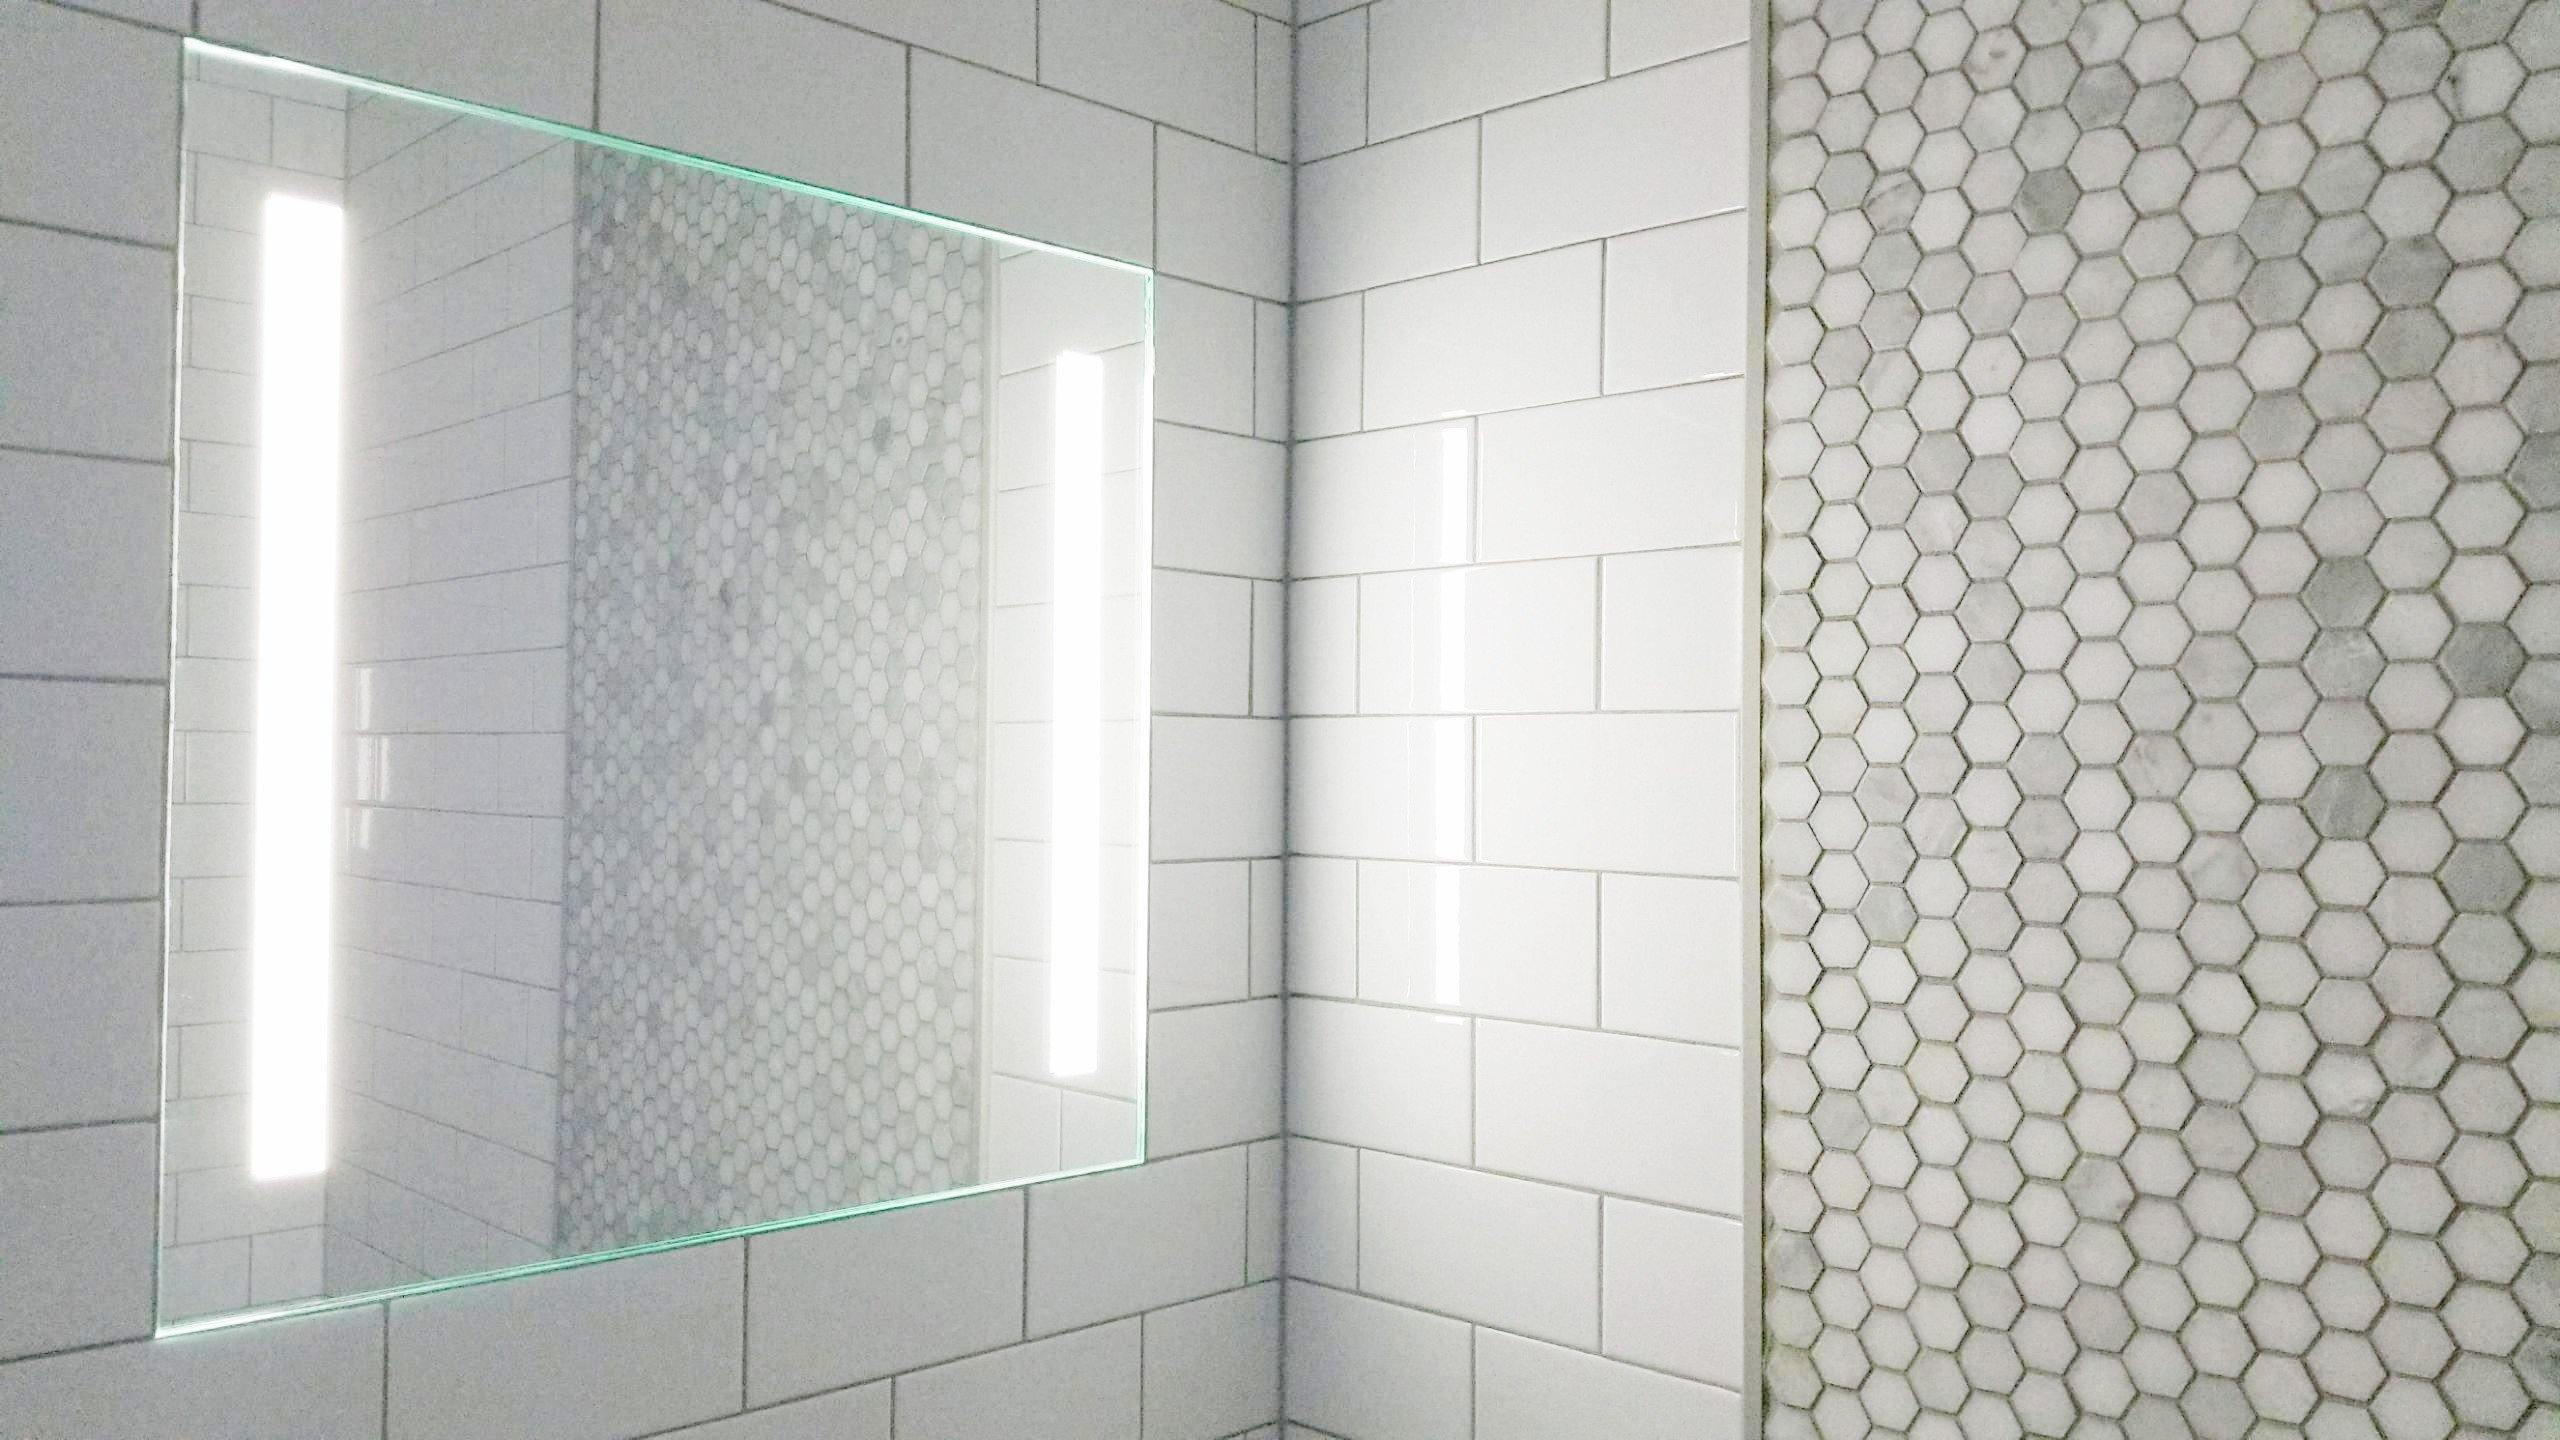 ClearMirror Showerlite (18x18) by ClearMirror (Image #4)